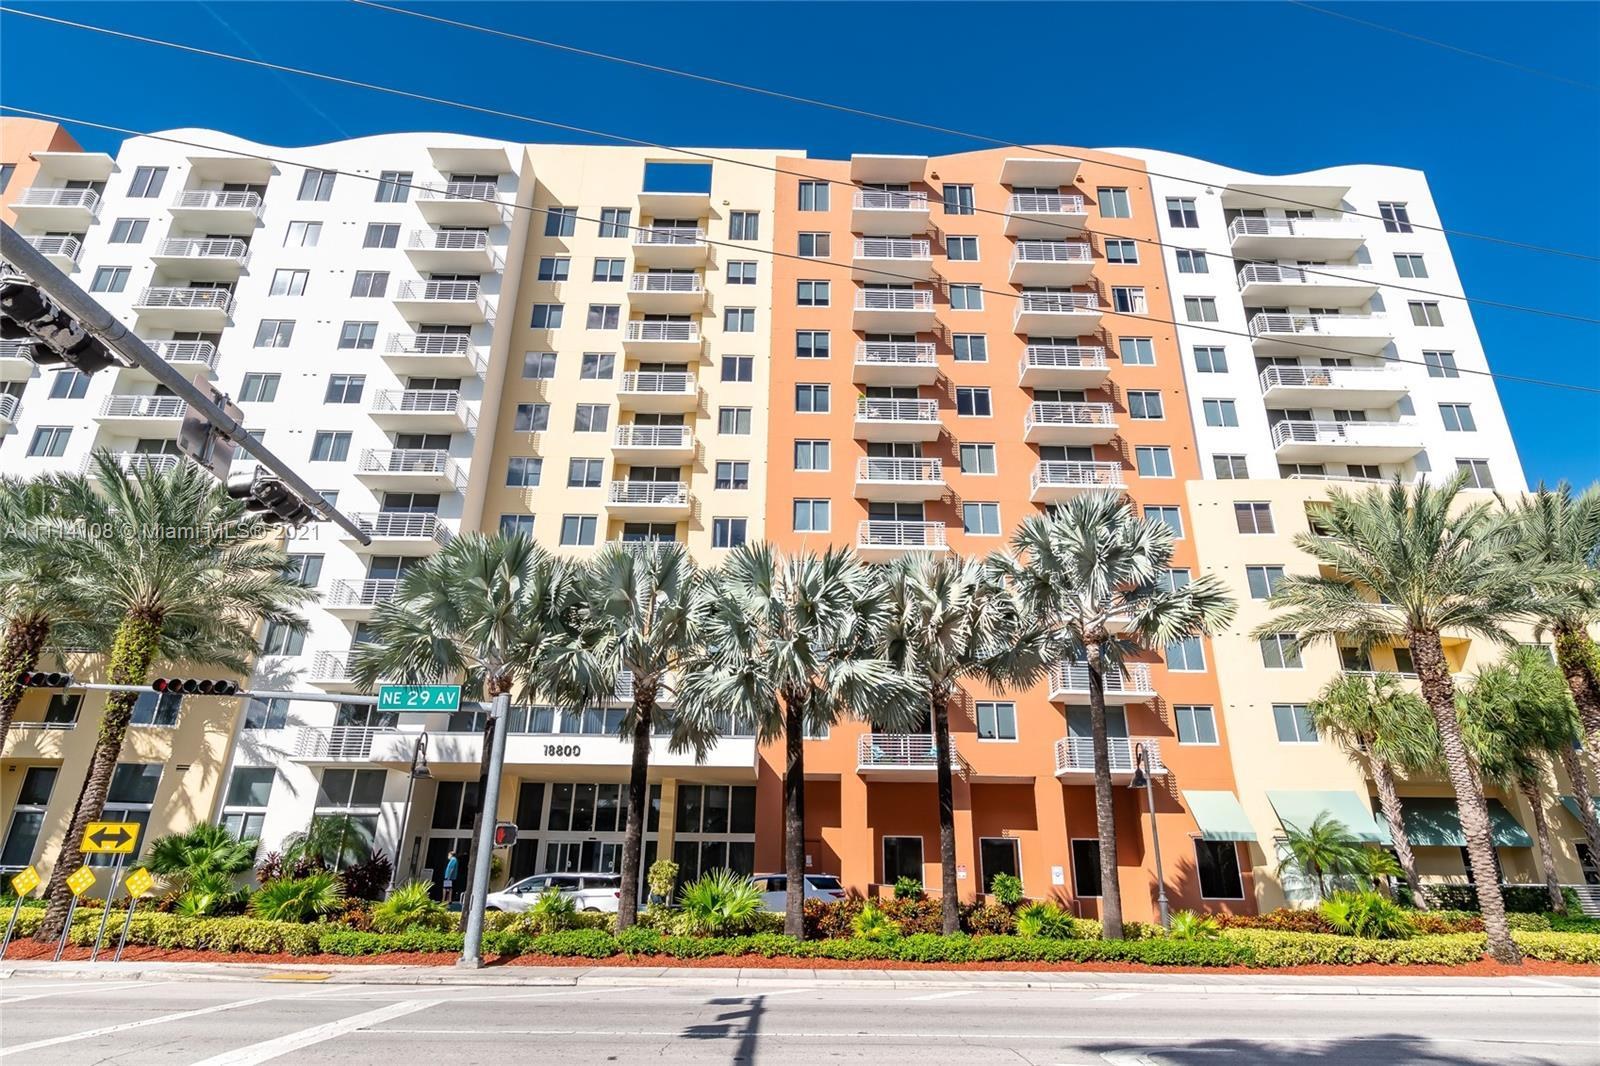 Location, location, modern, spacious, bright, and in Excellent condition 1 full bedroom unit with po